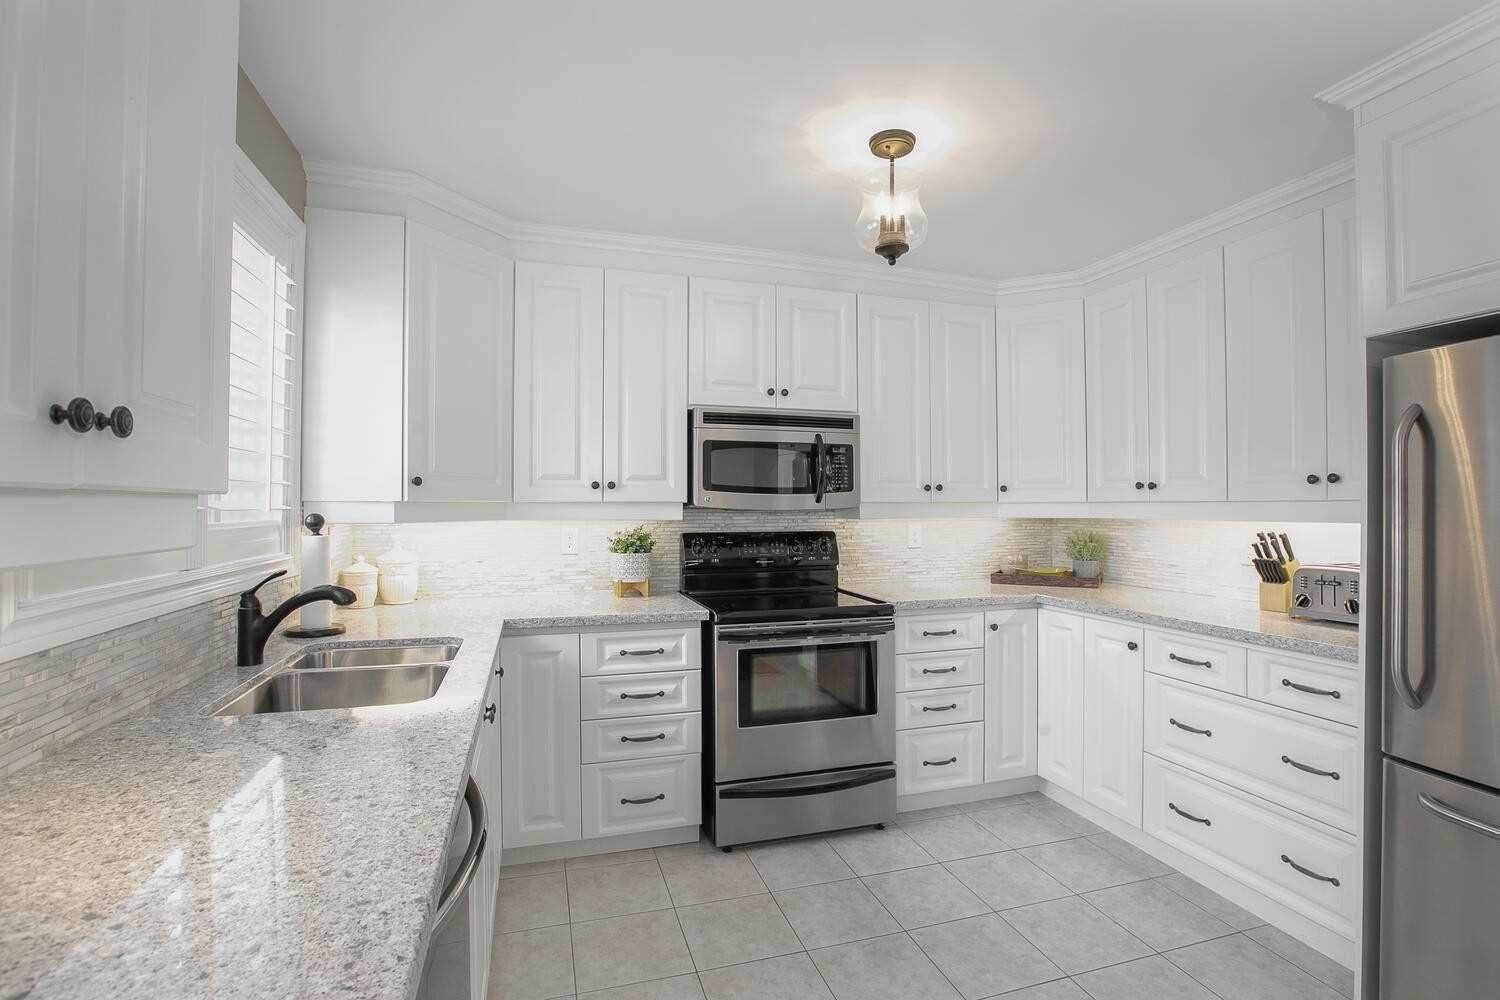 Photo 5: Photos: 190 Dean Burton Lane in Newmarket: Woodland Hill House (2-Storey) for sale : MLS®# N4918510